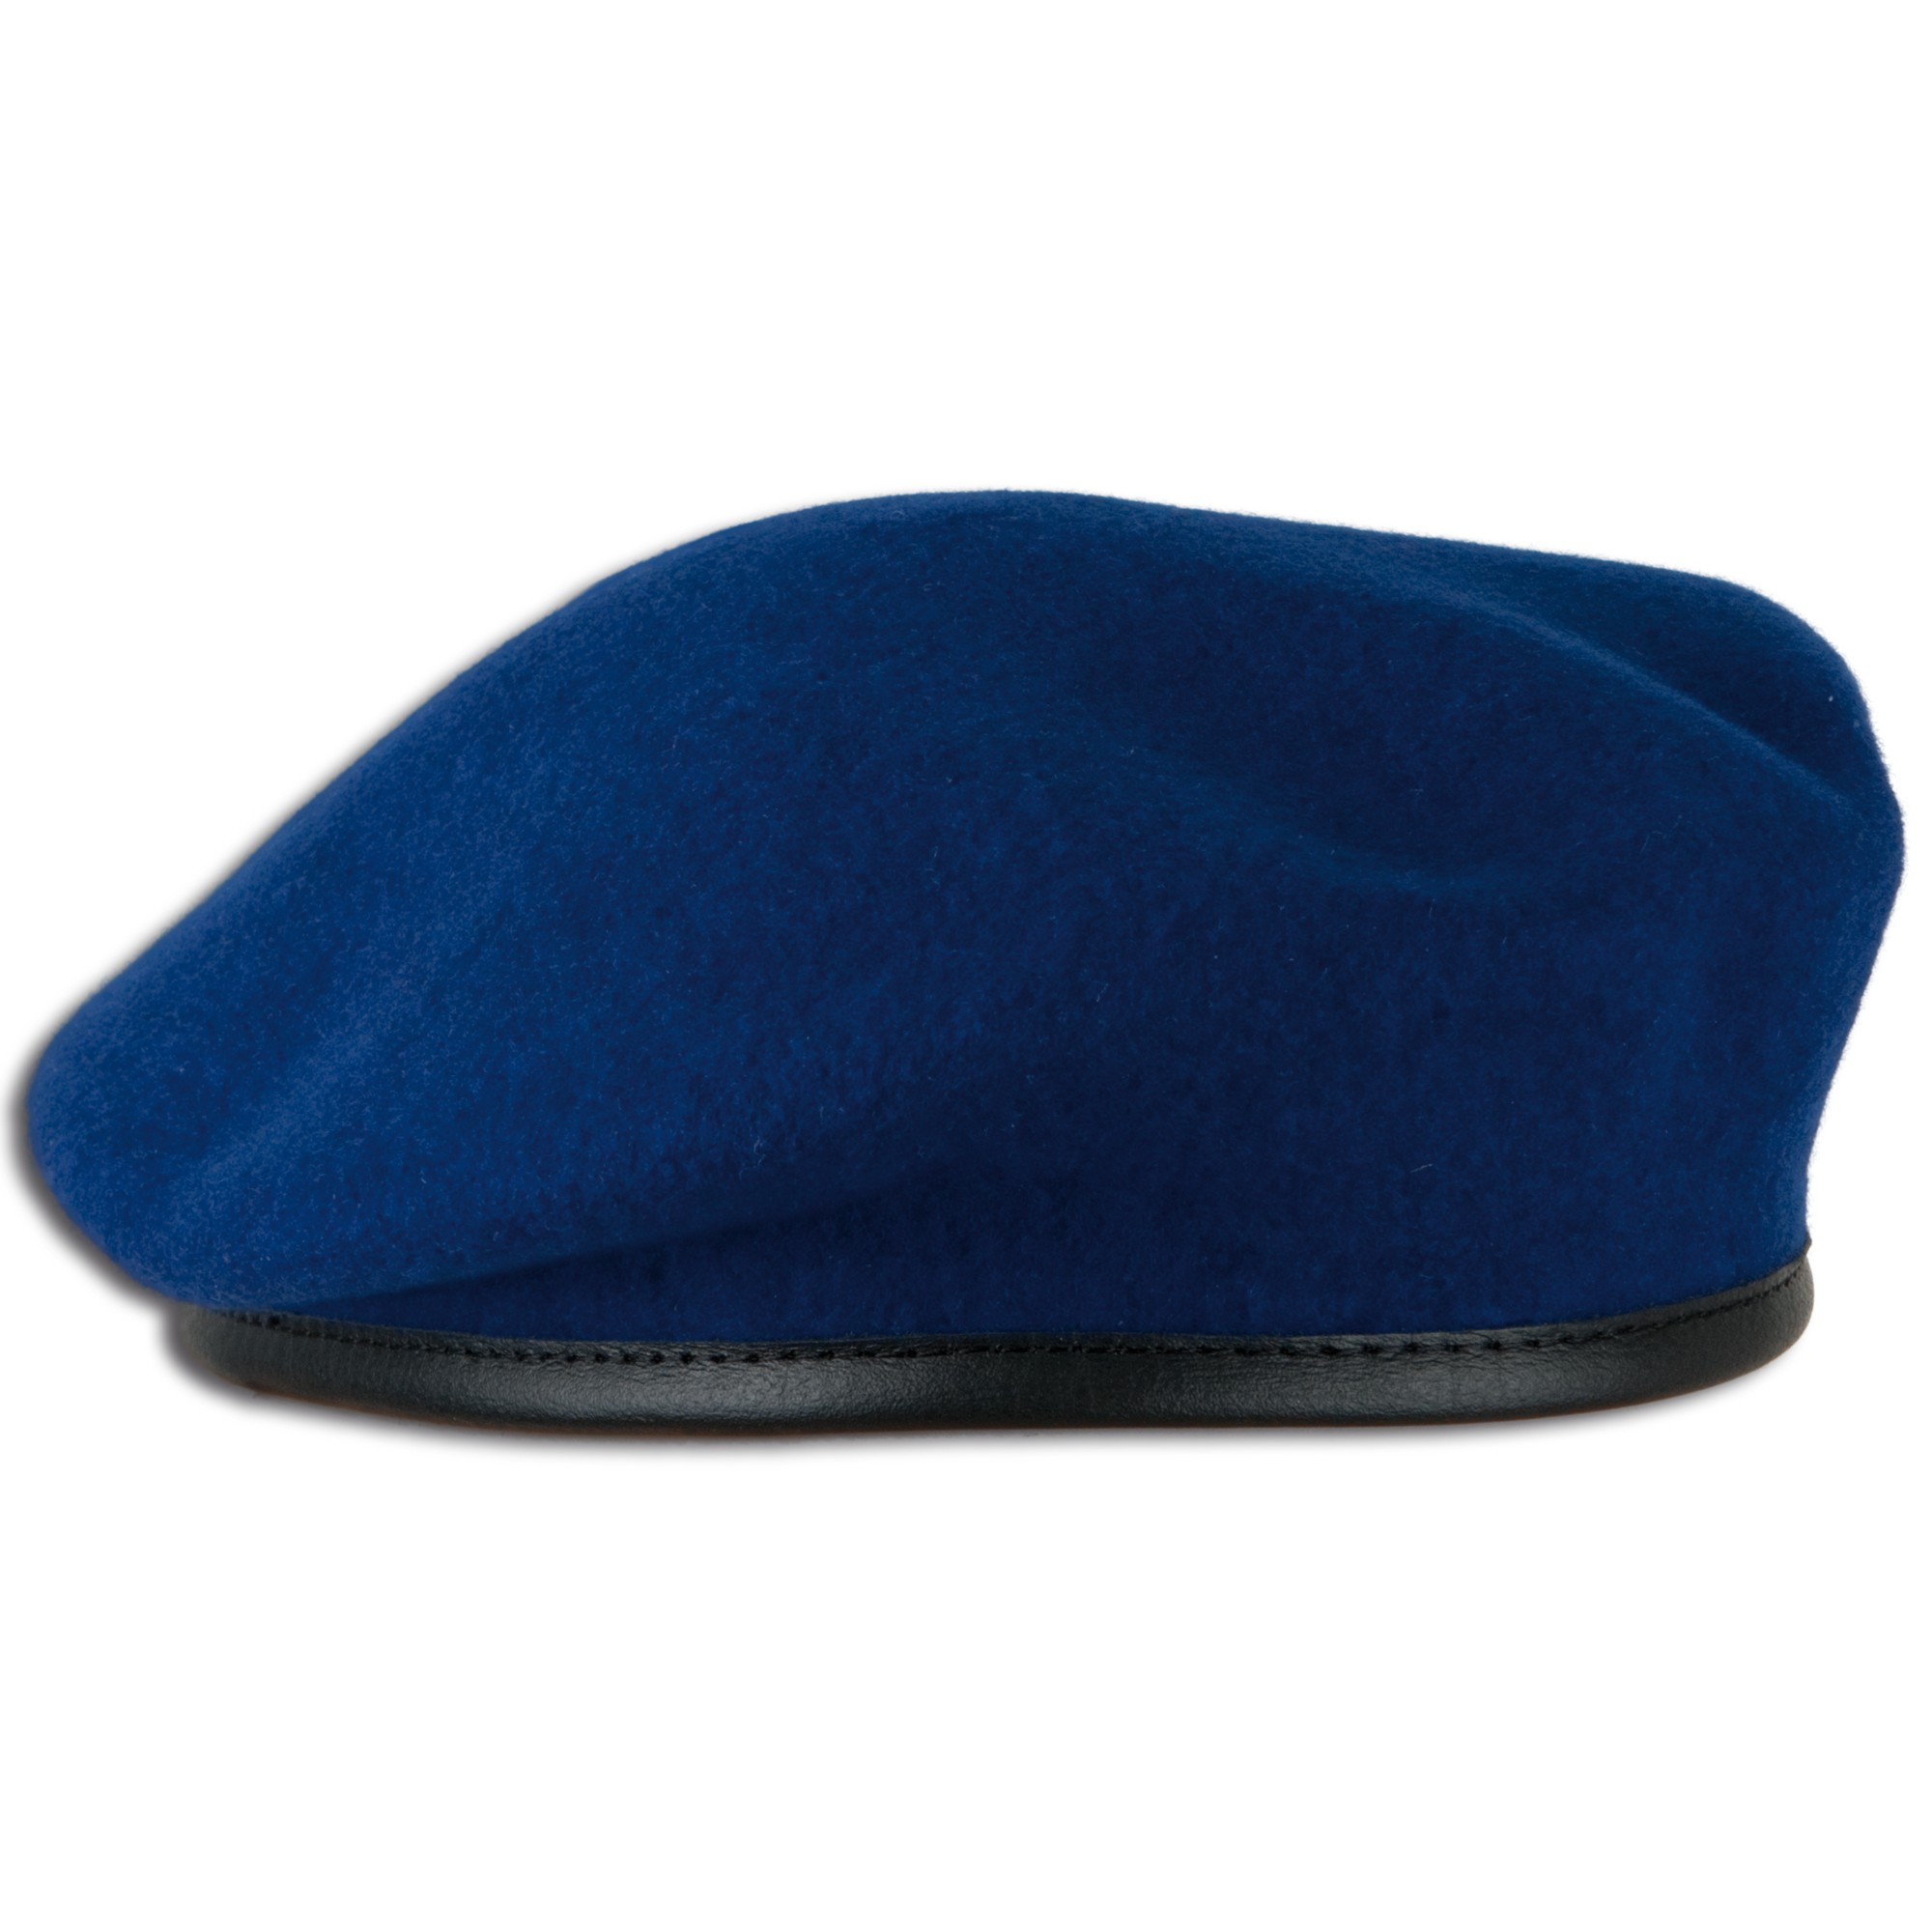 Commando Beret navy blue